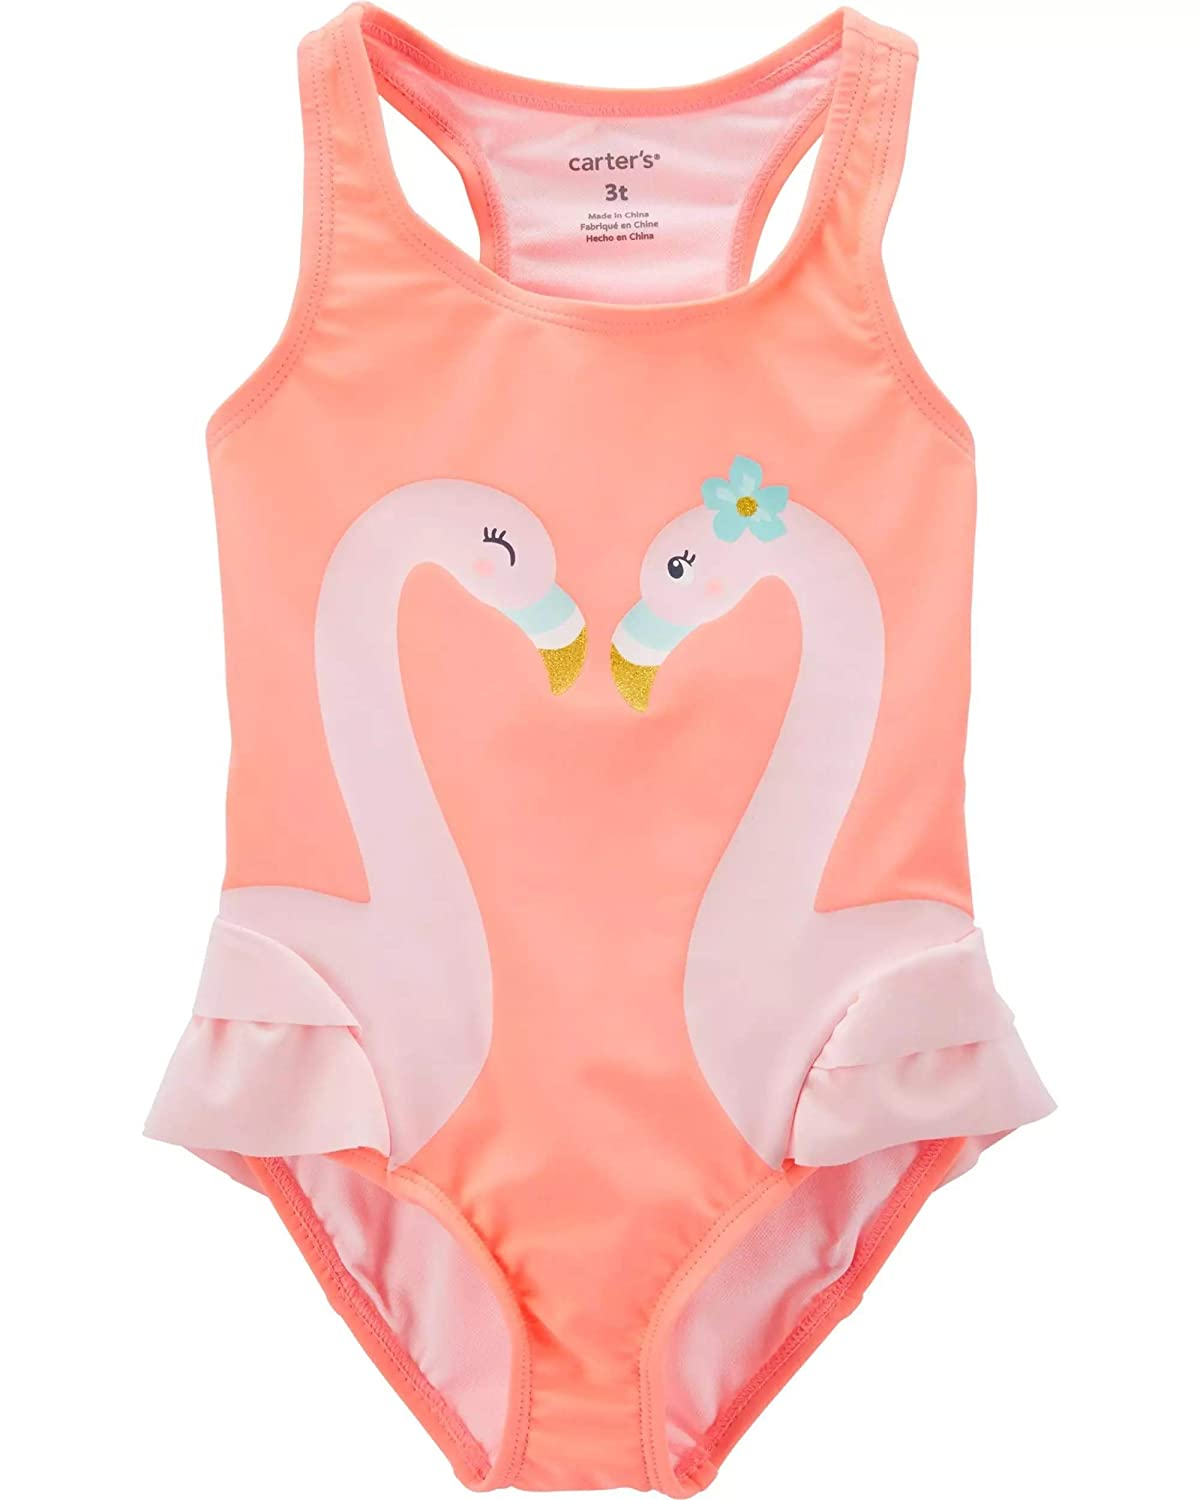 bb8b0ac8b Amazon.com: Carter's Girls' One-Piece Swimsuit: Clothing